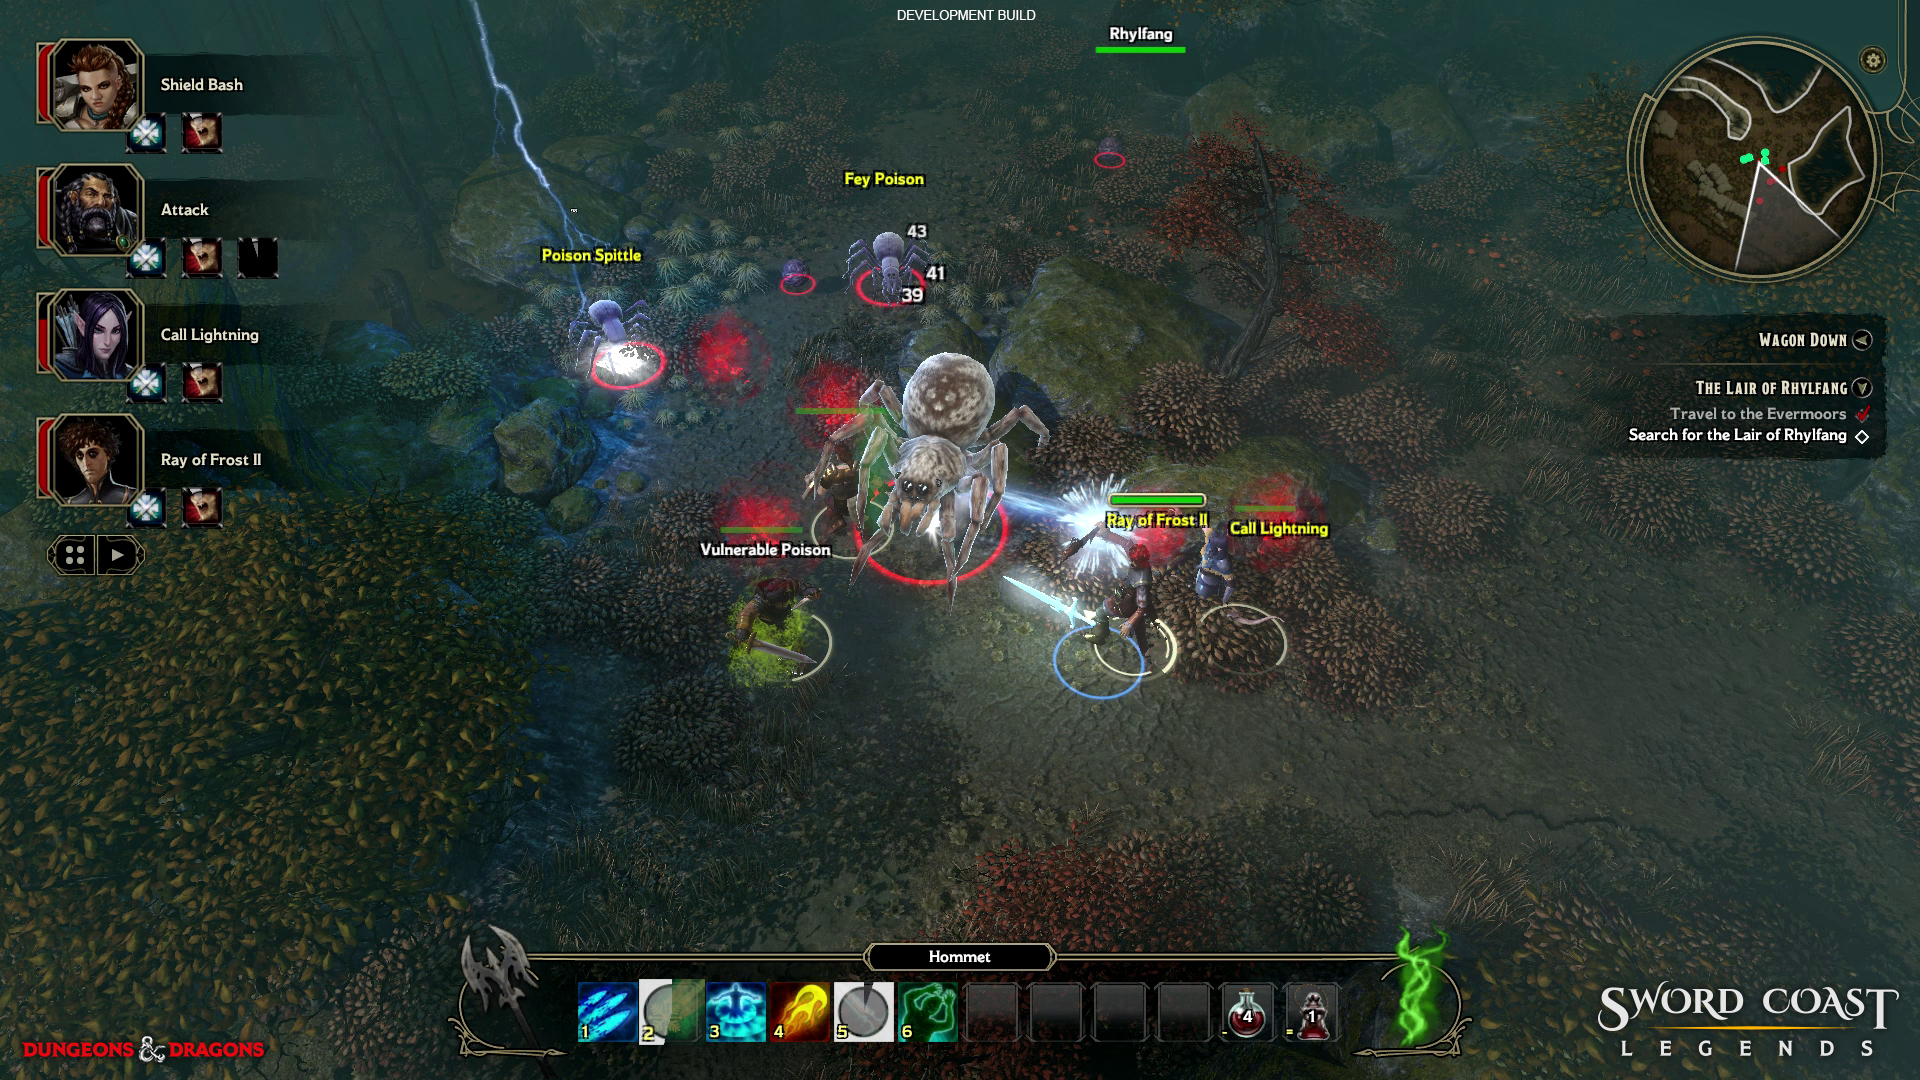 Sword Coast Legends makes being a DM simple and fun – GAMING TREND